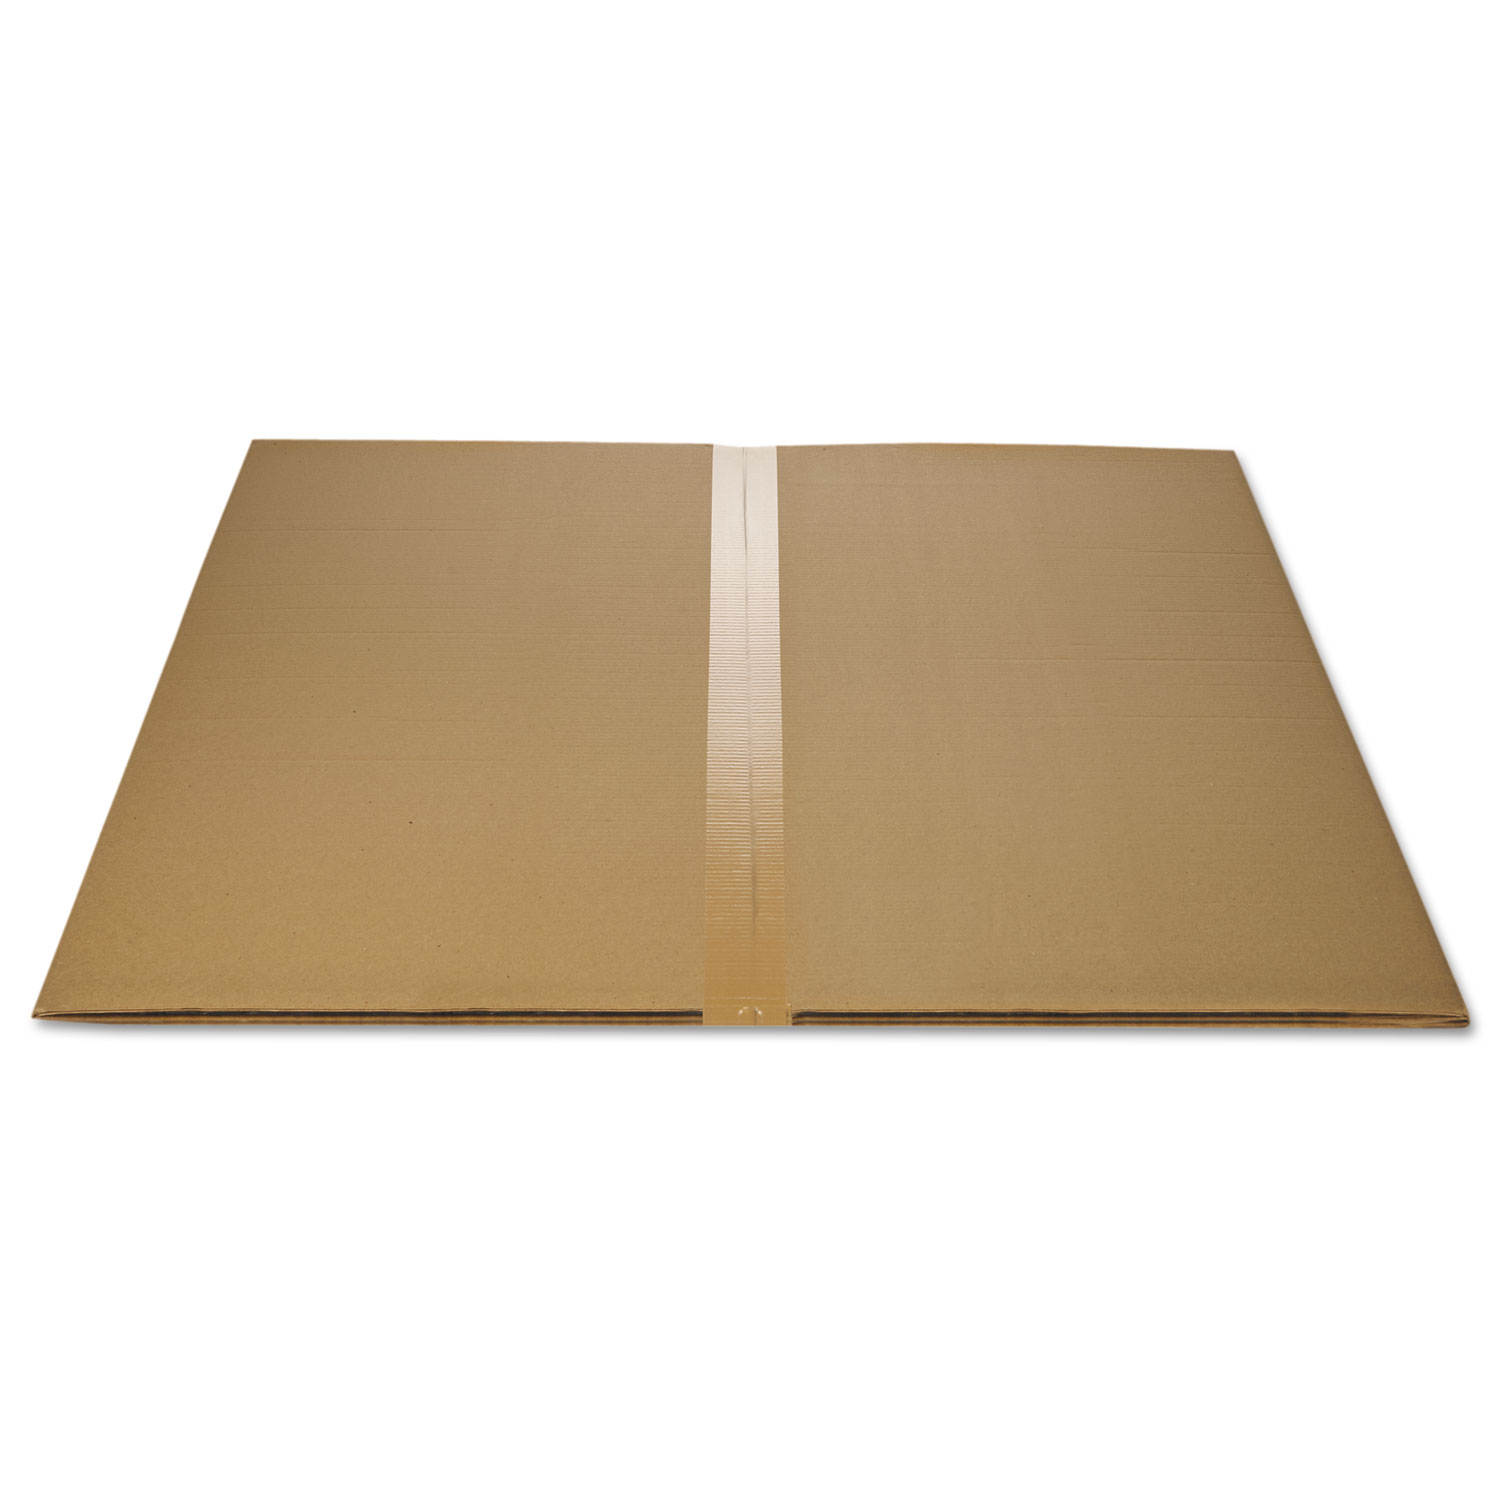 Chair Floor Mat Economat All Day Use Chair Mat For Hard Floors By Deflecto